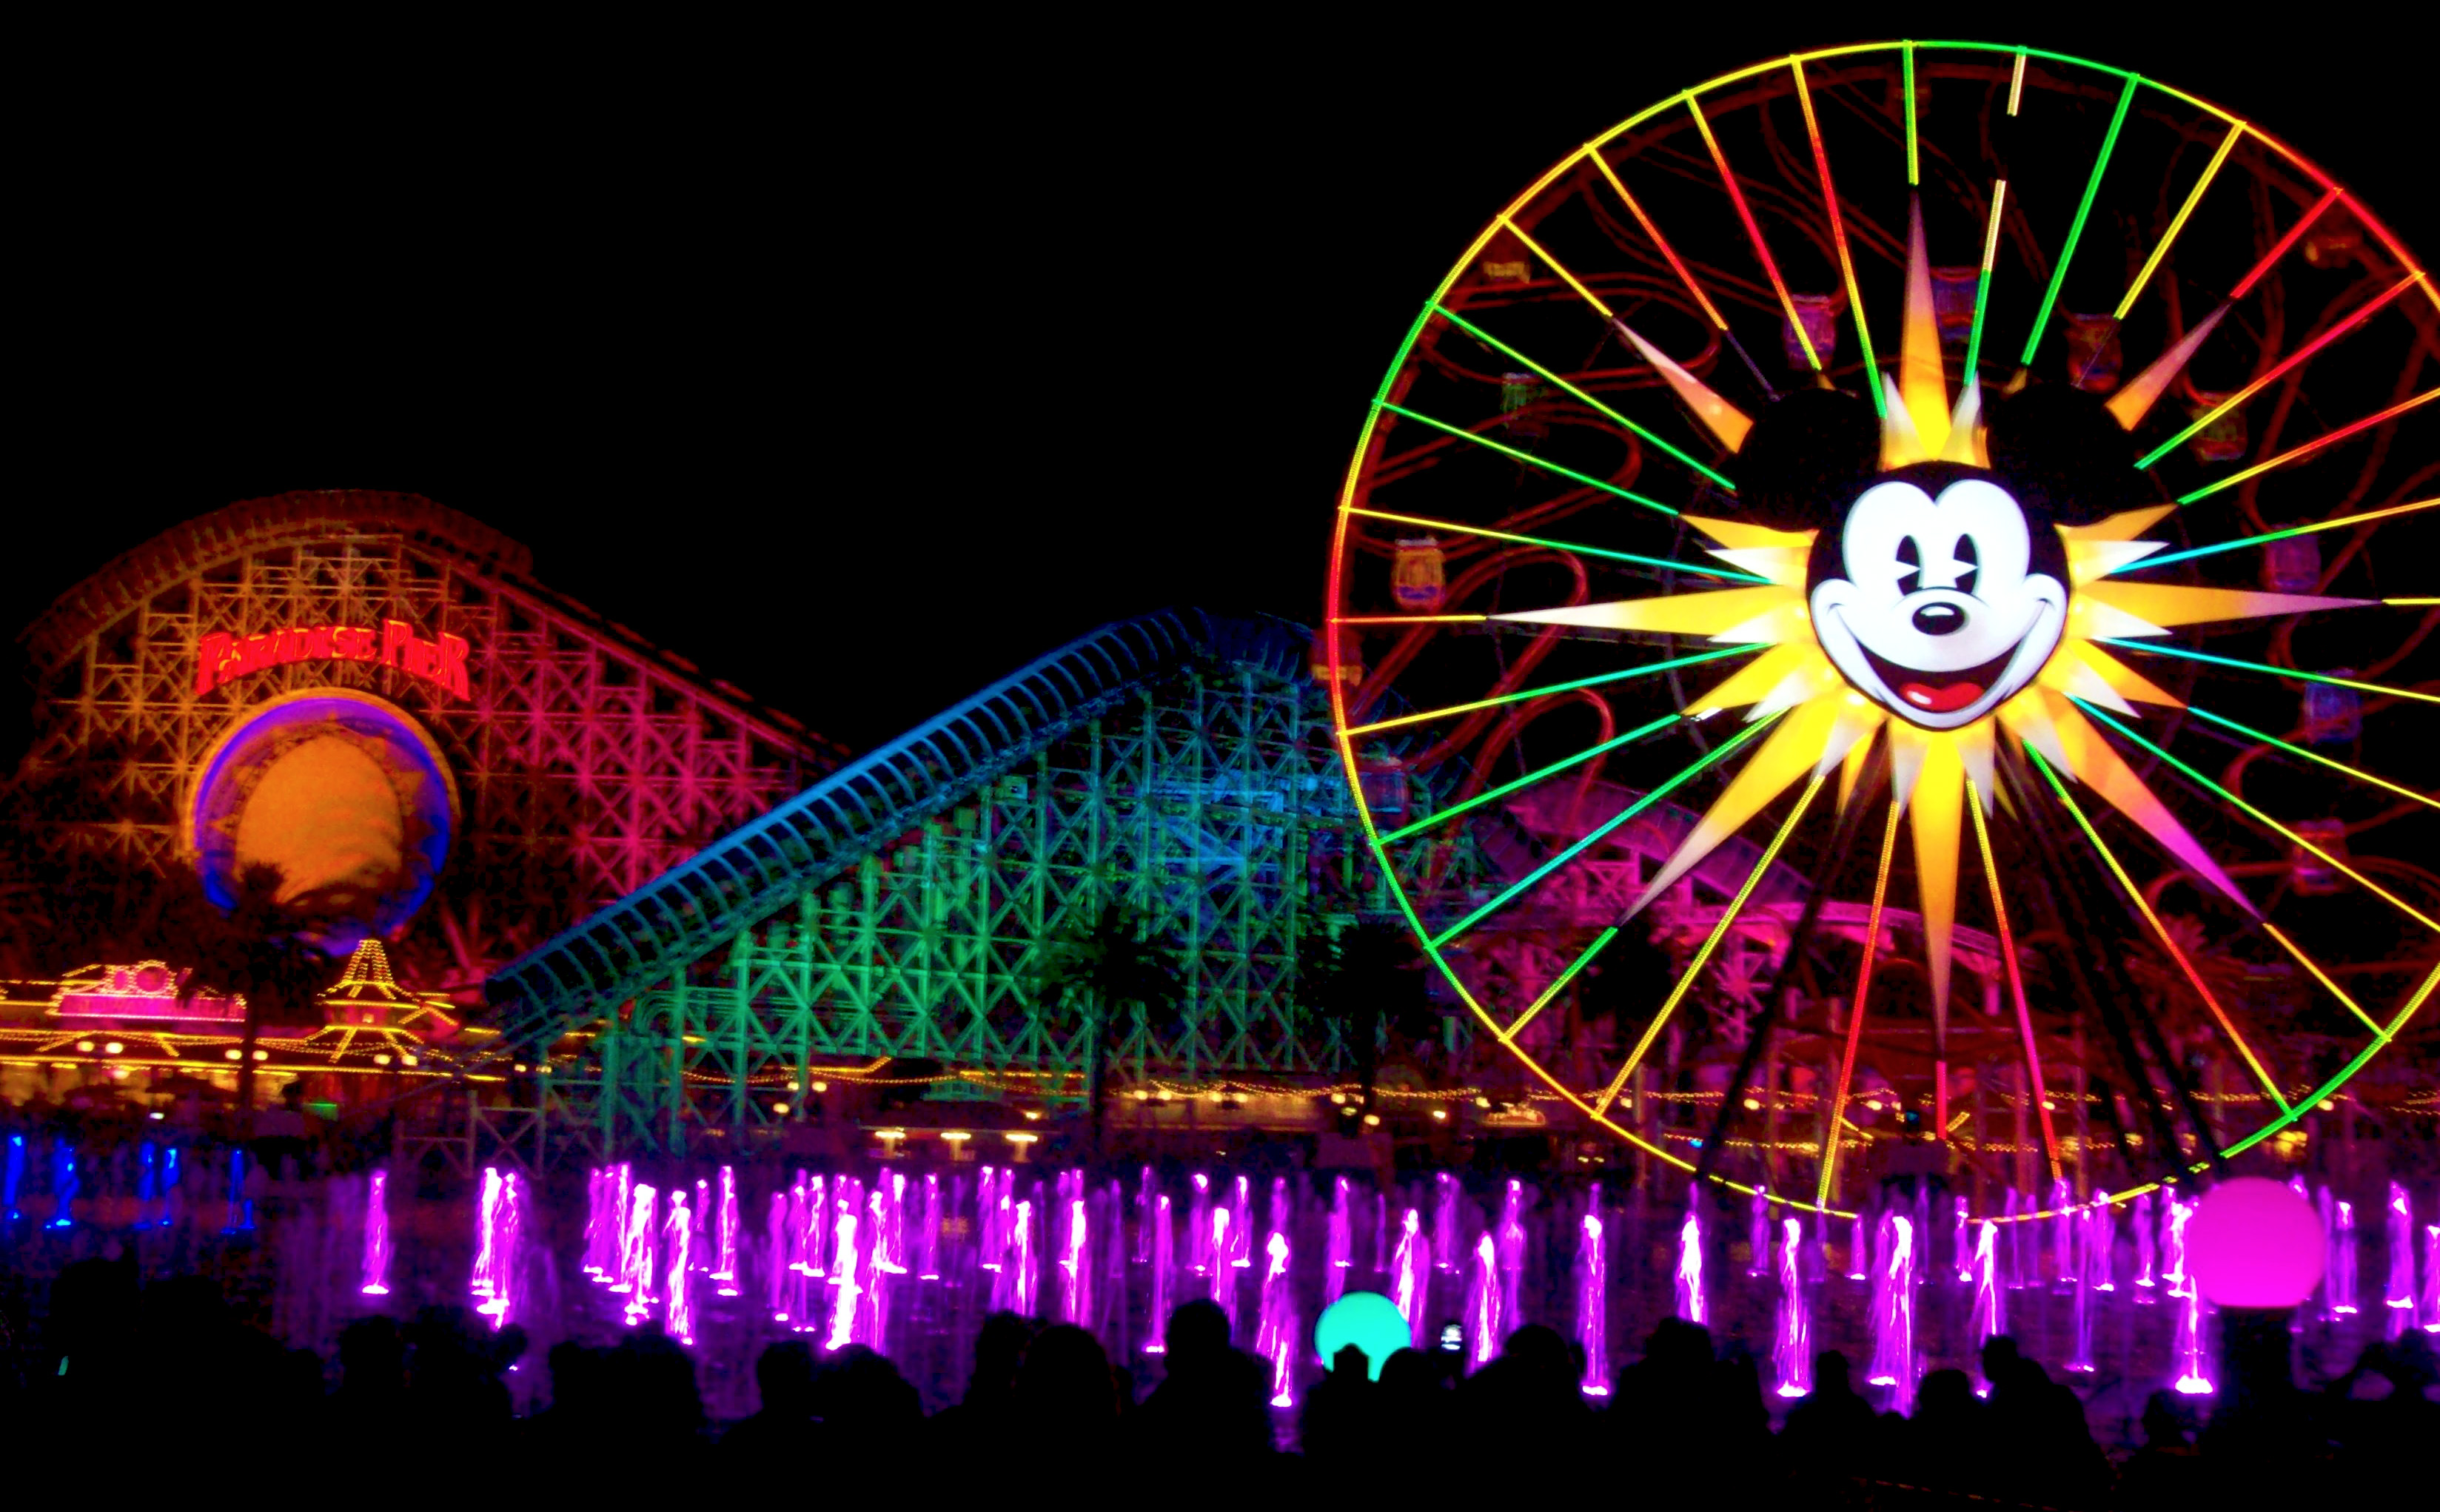 ... in Disneyland (Part 15): World of Color | The Adventures of a Lost Boy